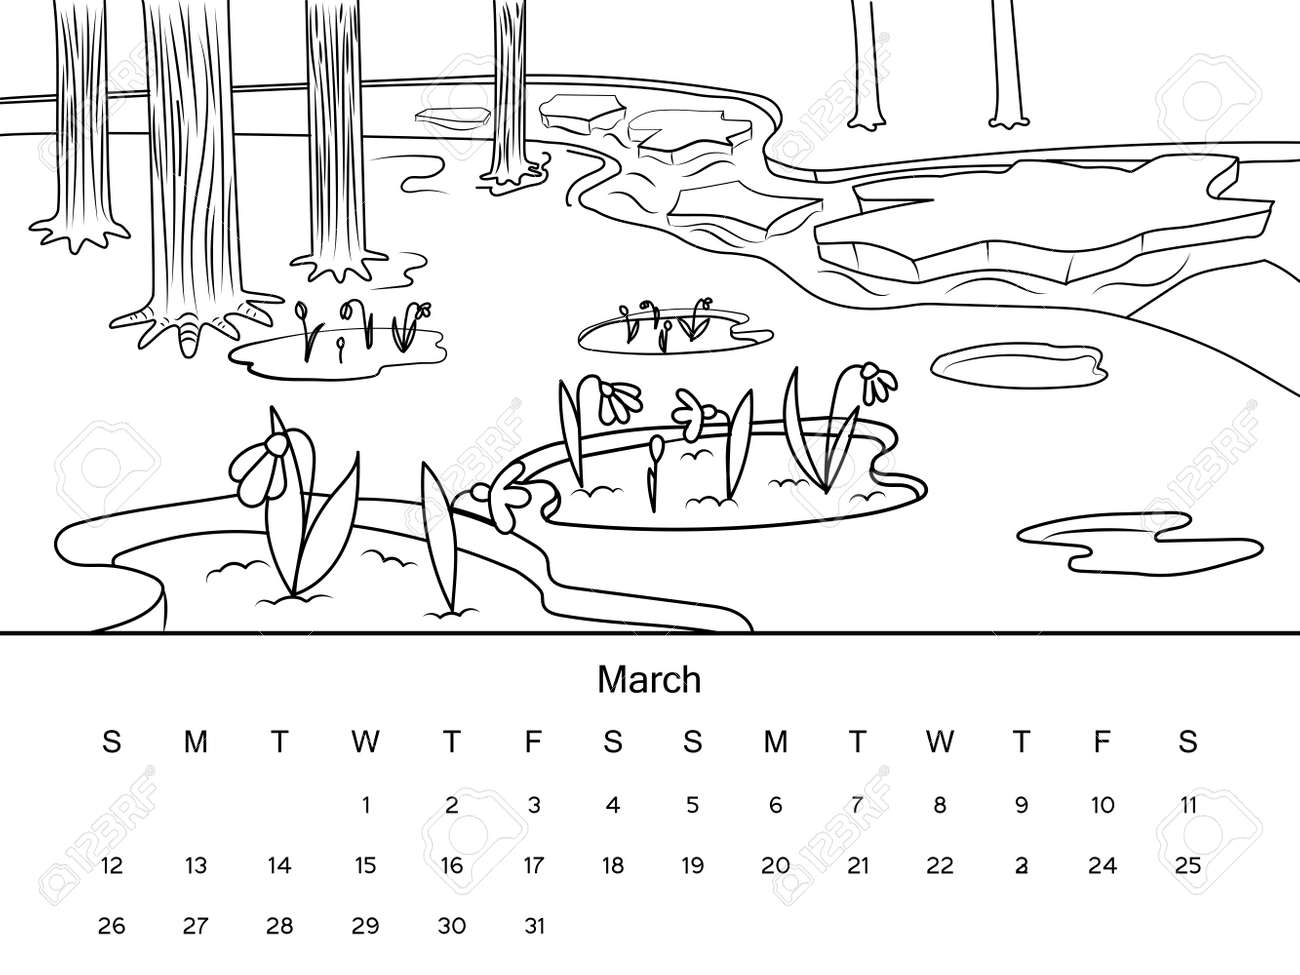 March Calendar With Coloring Book Image Black And White Drawing Cartoon Hand Drawn Vector